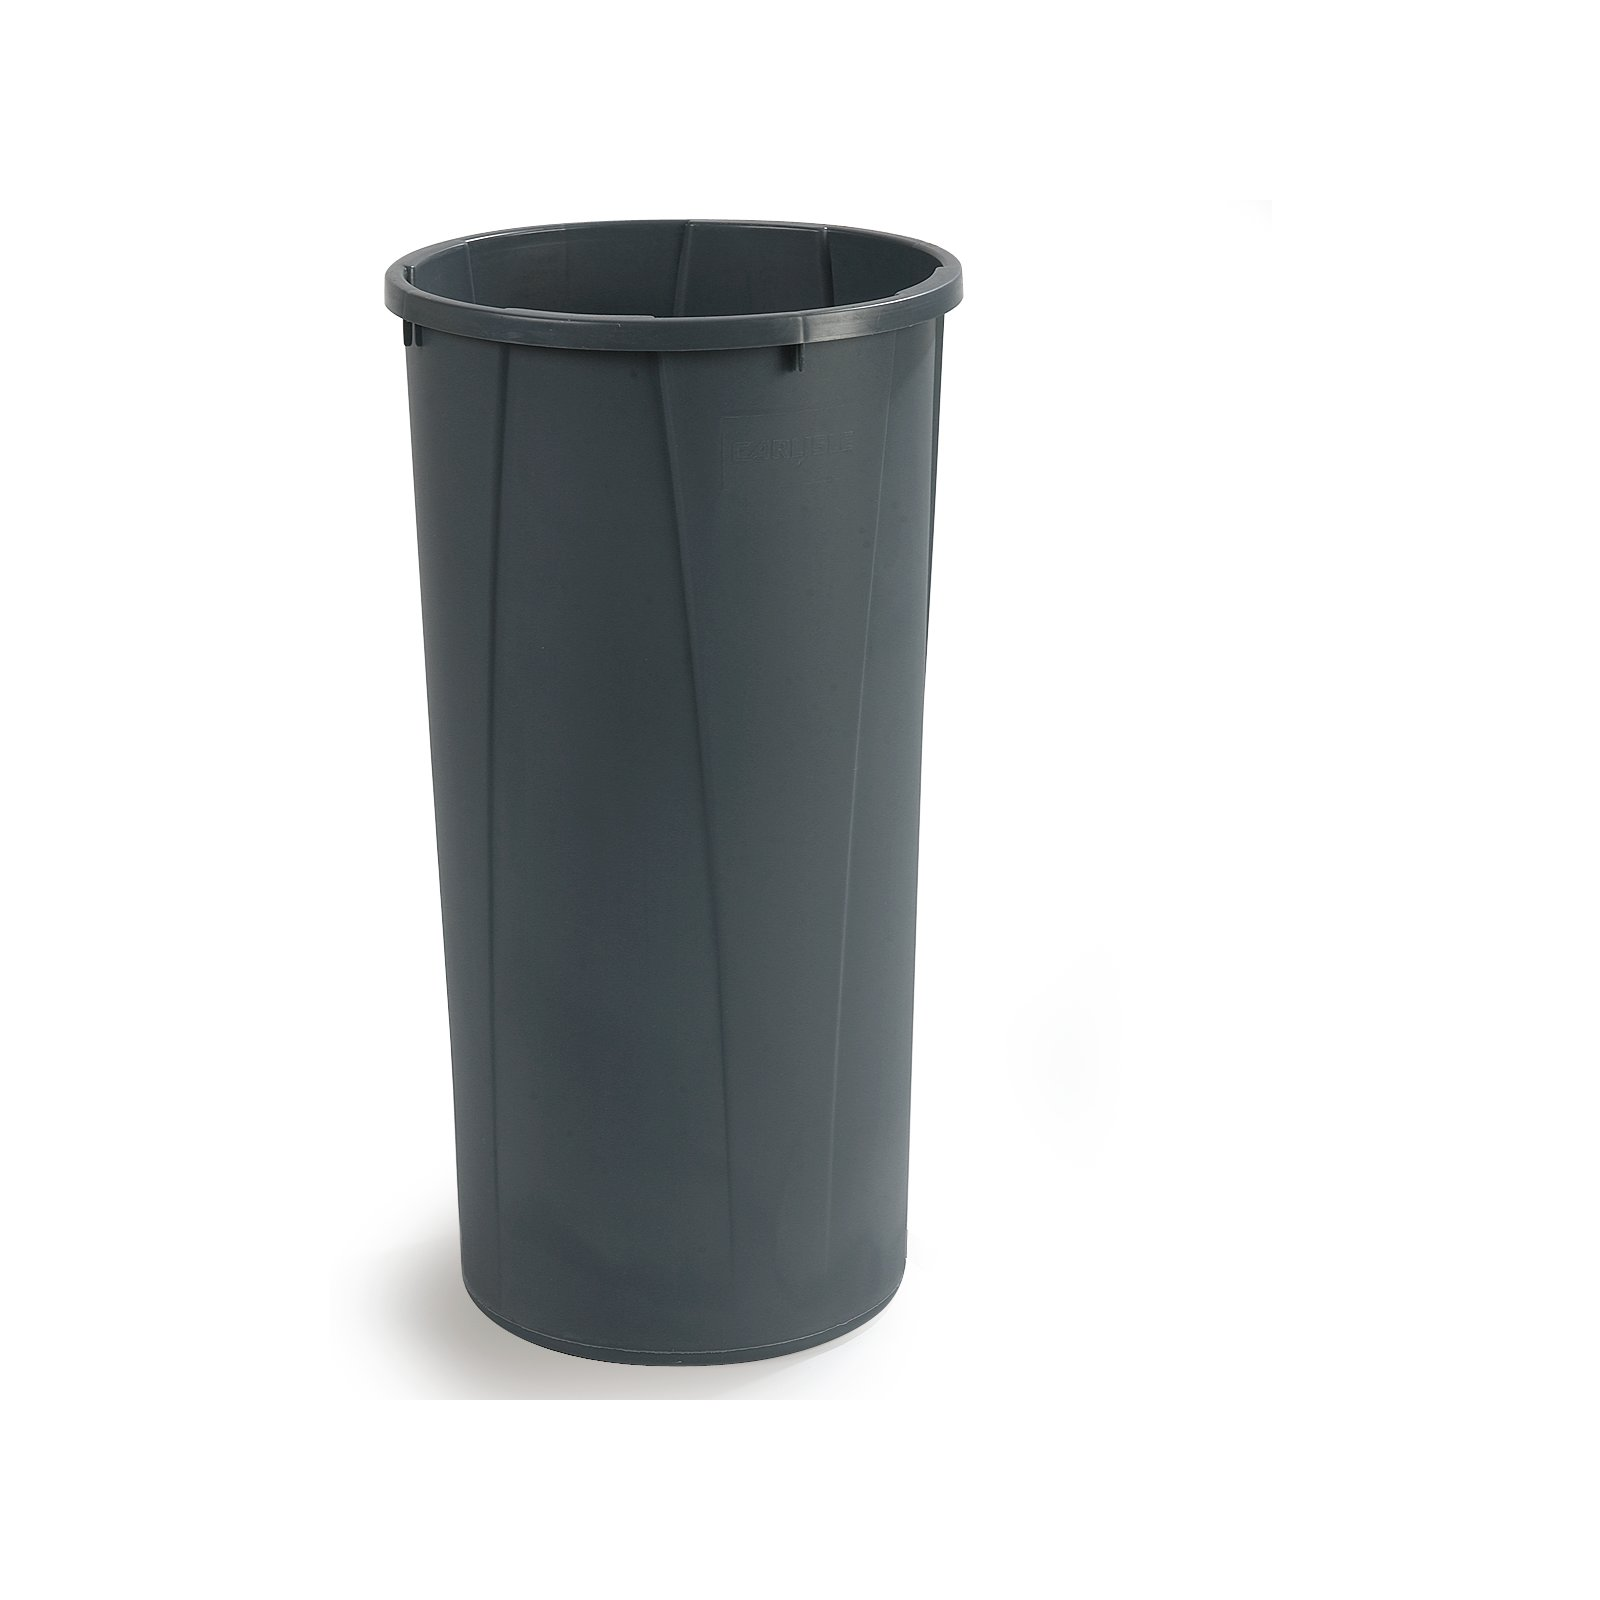 Tall Narrow Trash Can 34312223 Centurian Round Tall Waste Container Trash Can